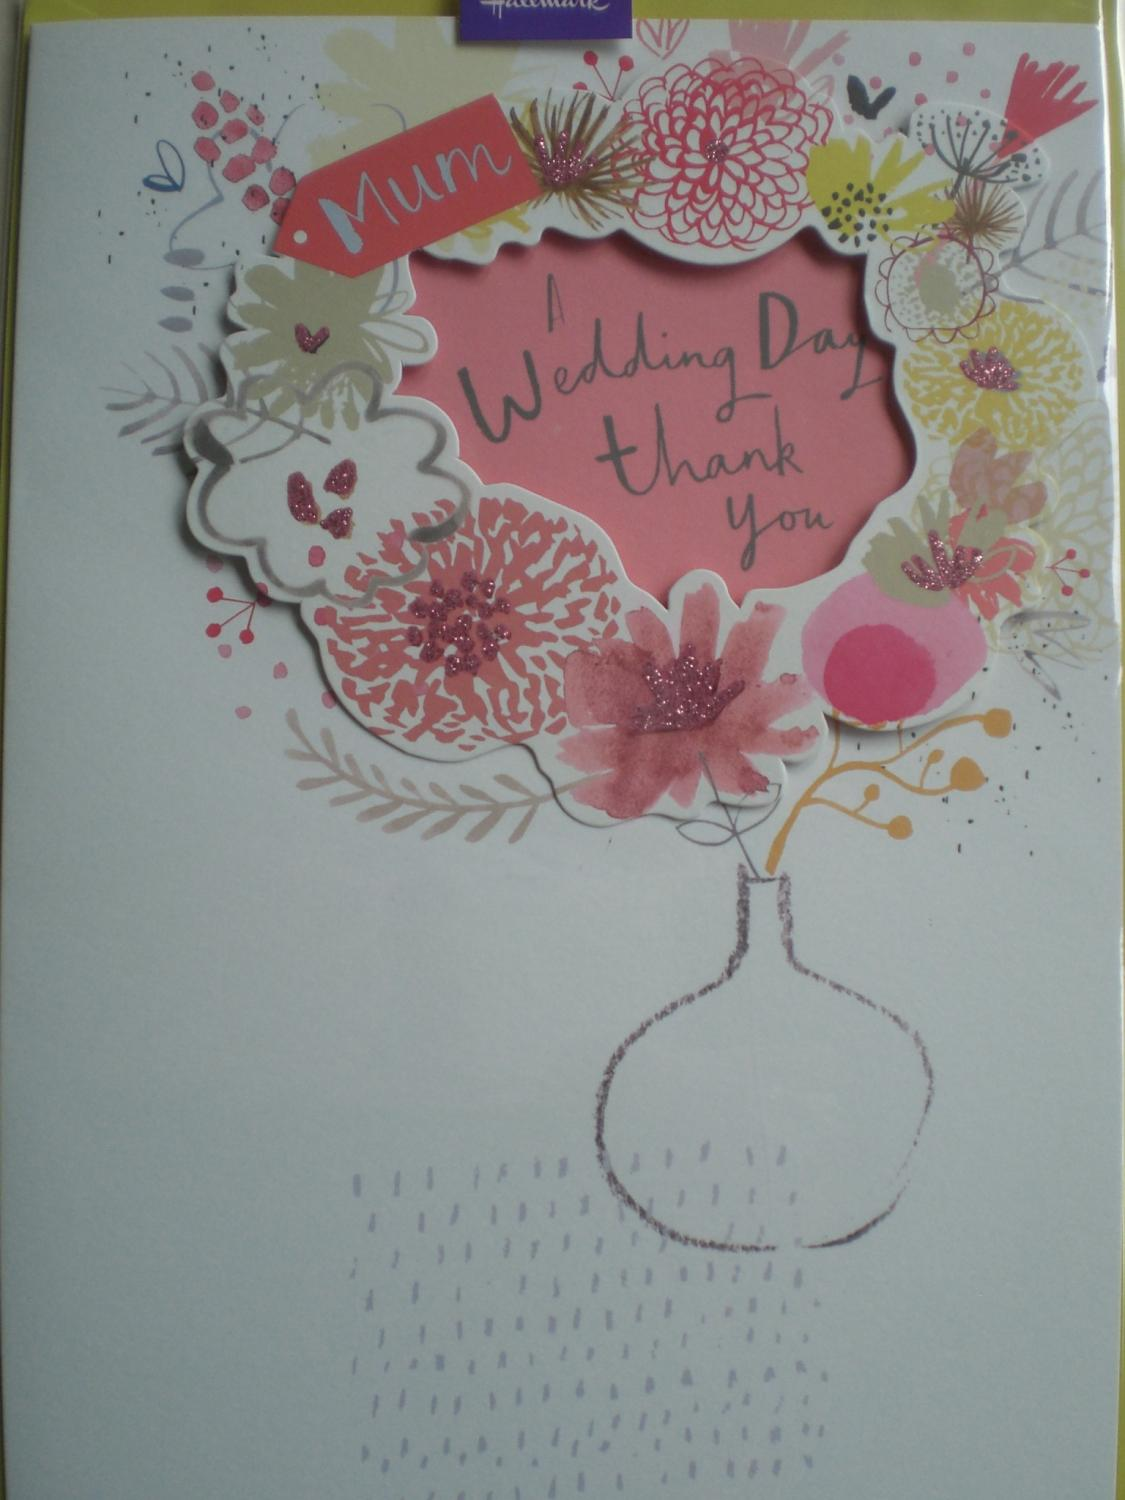 Wedding day thank you mum card